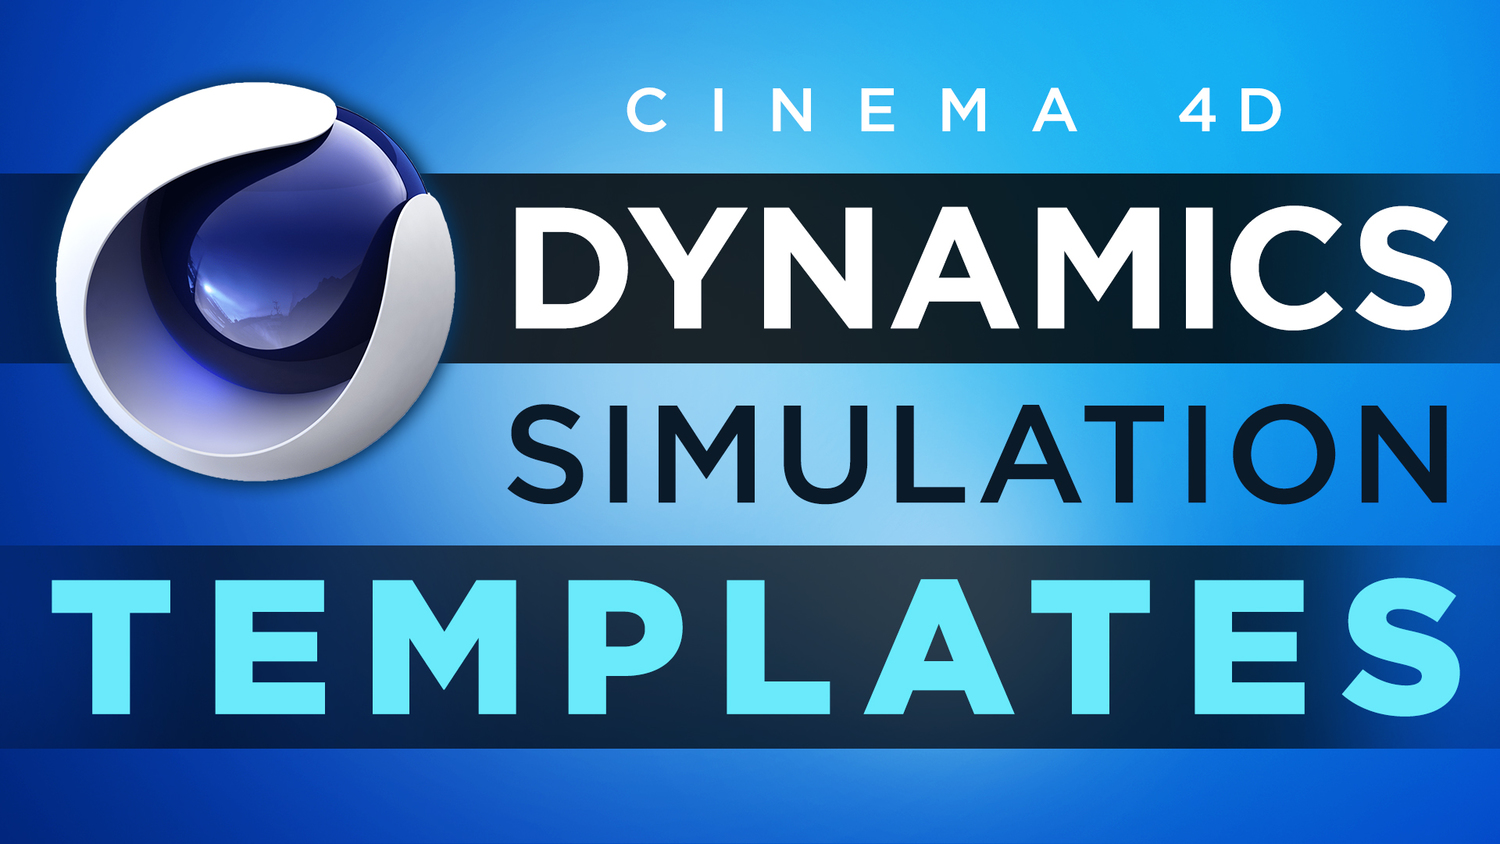 Cinema 4D Dynamics Simulations Templates — Motion Tutorials